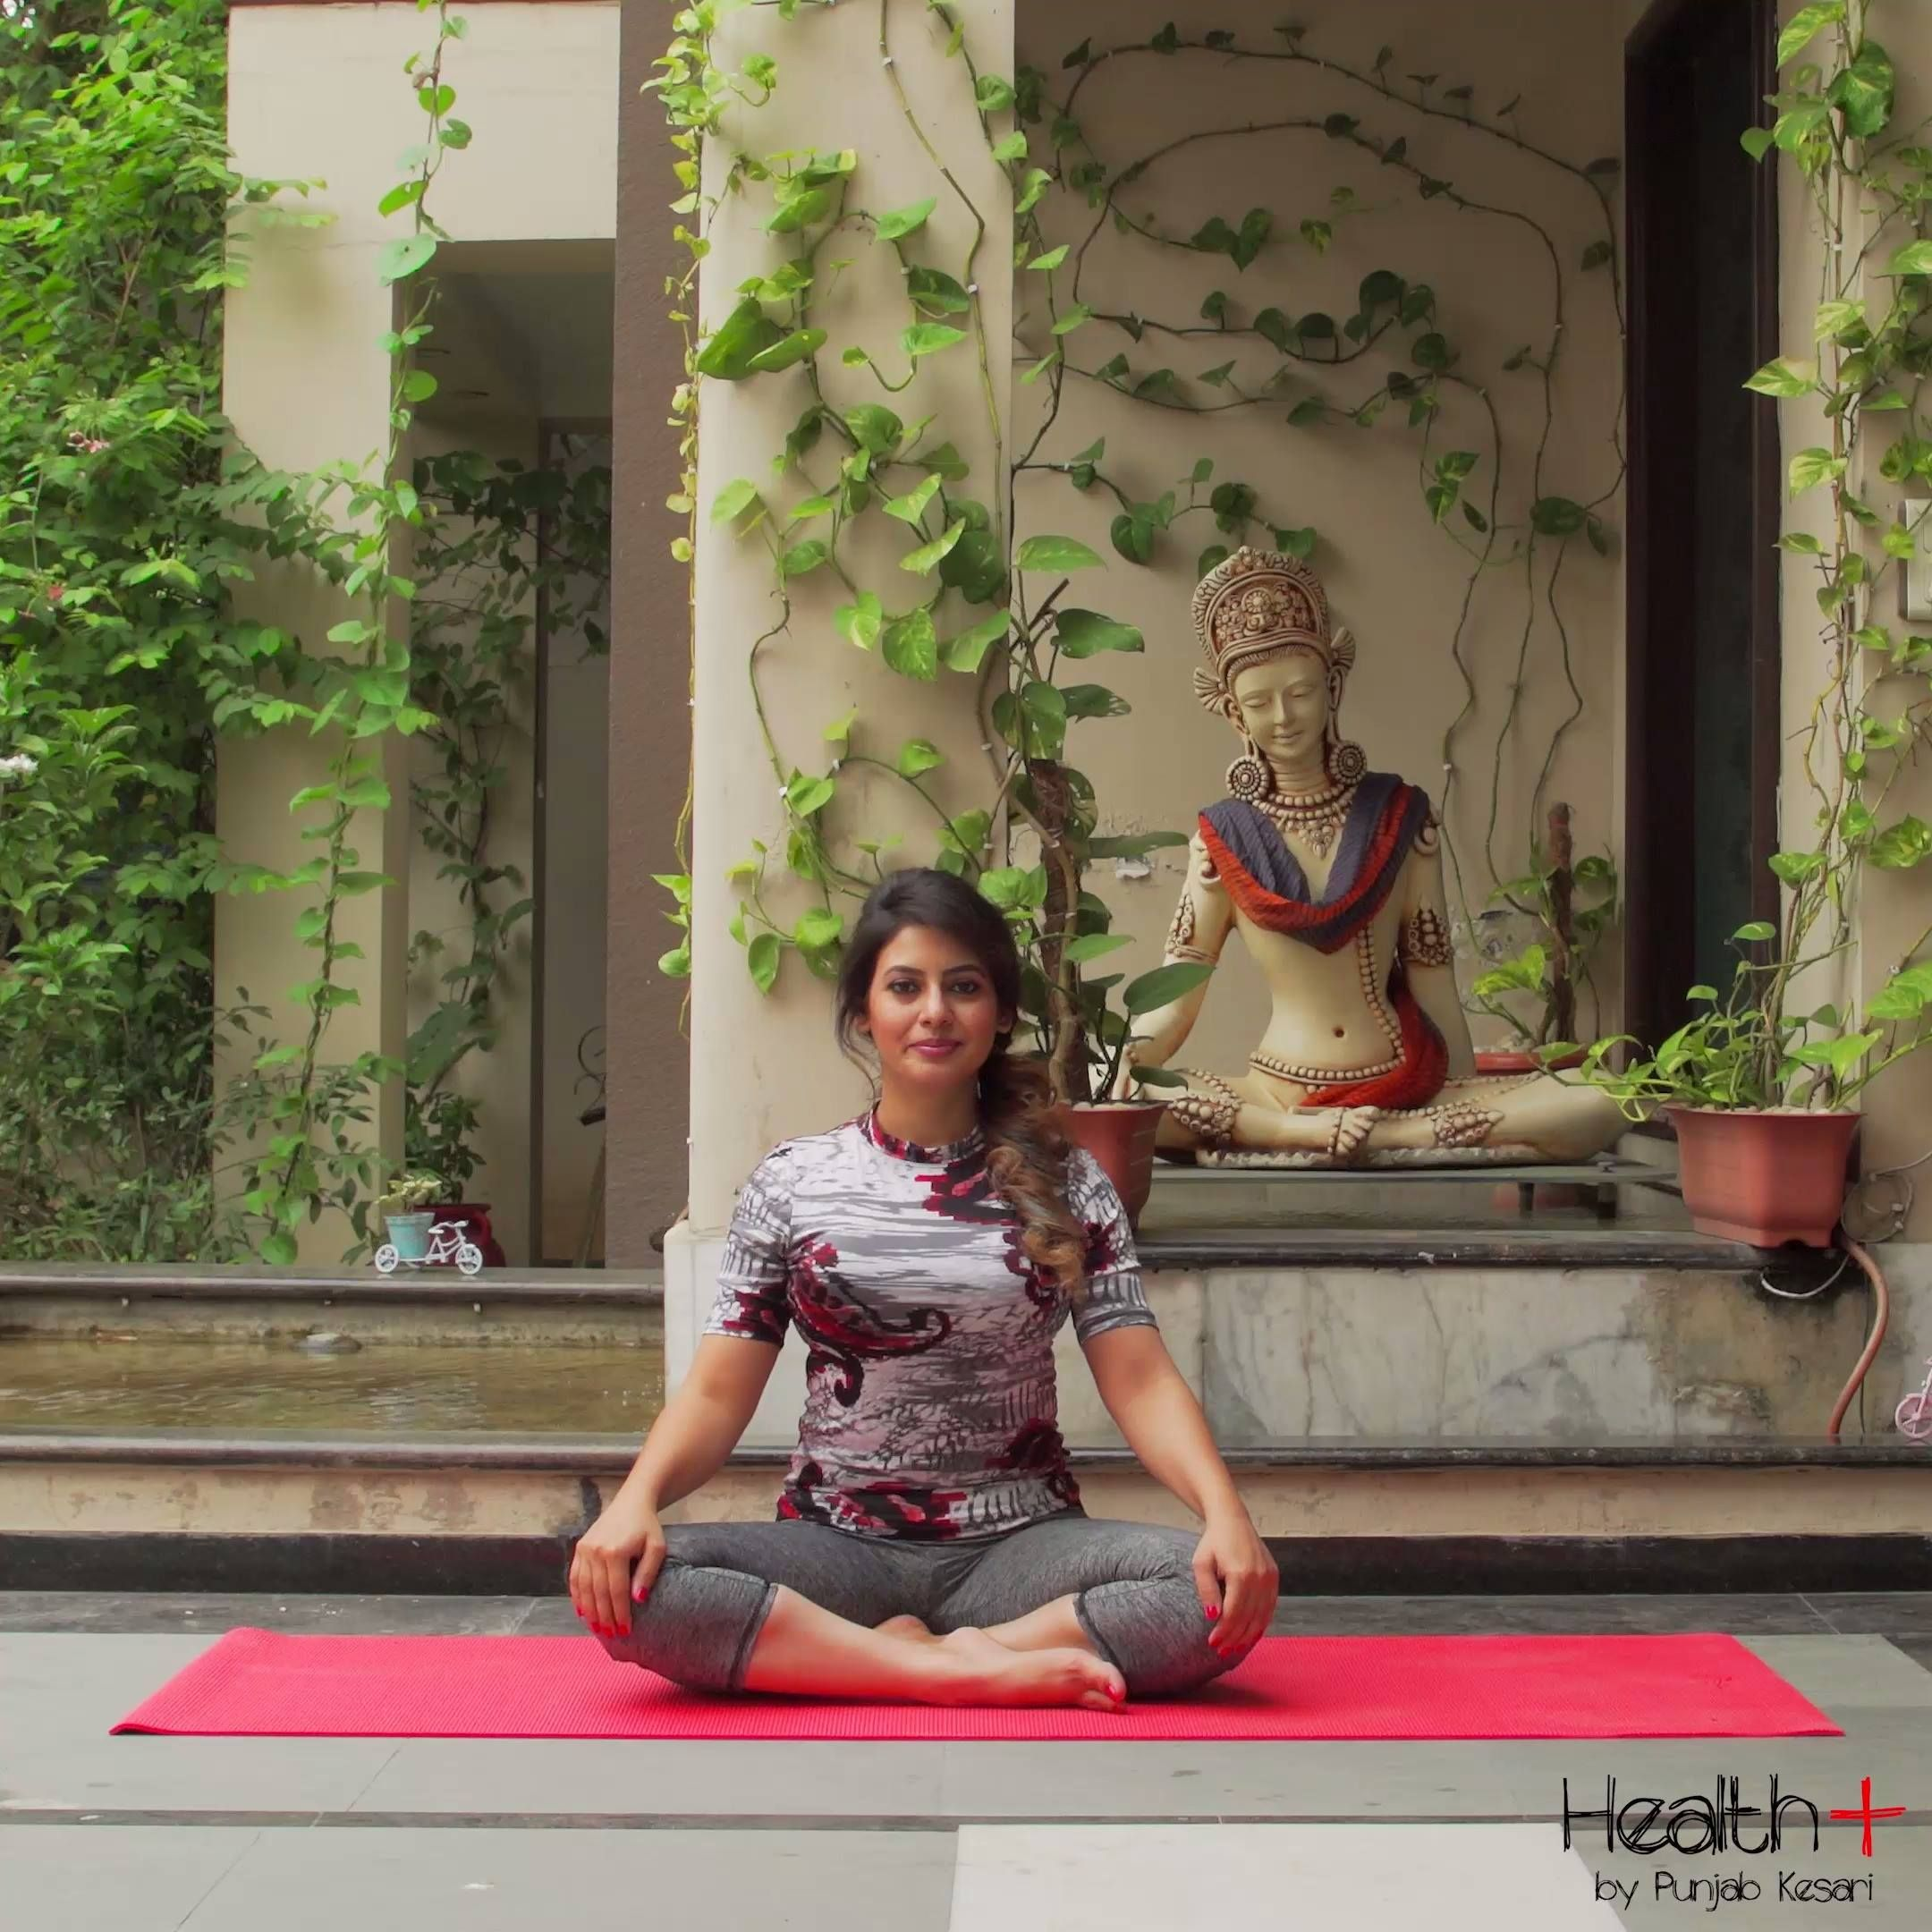 Challenging Yoga Asana Sequence for Power and Strength